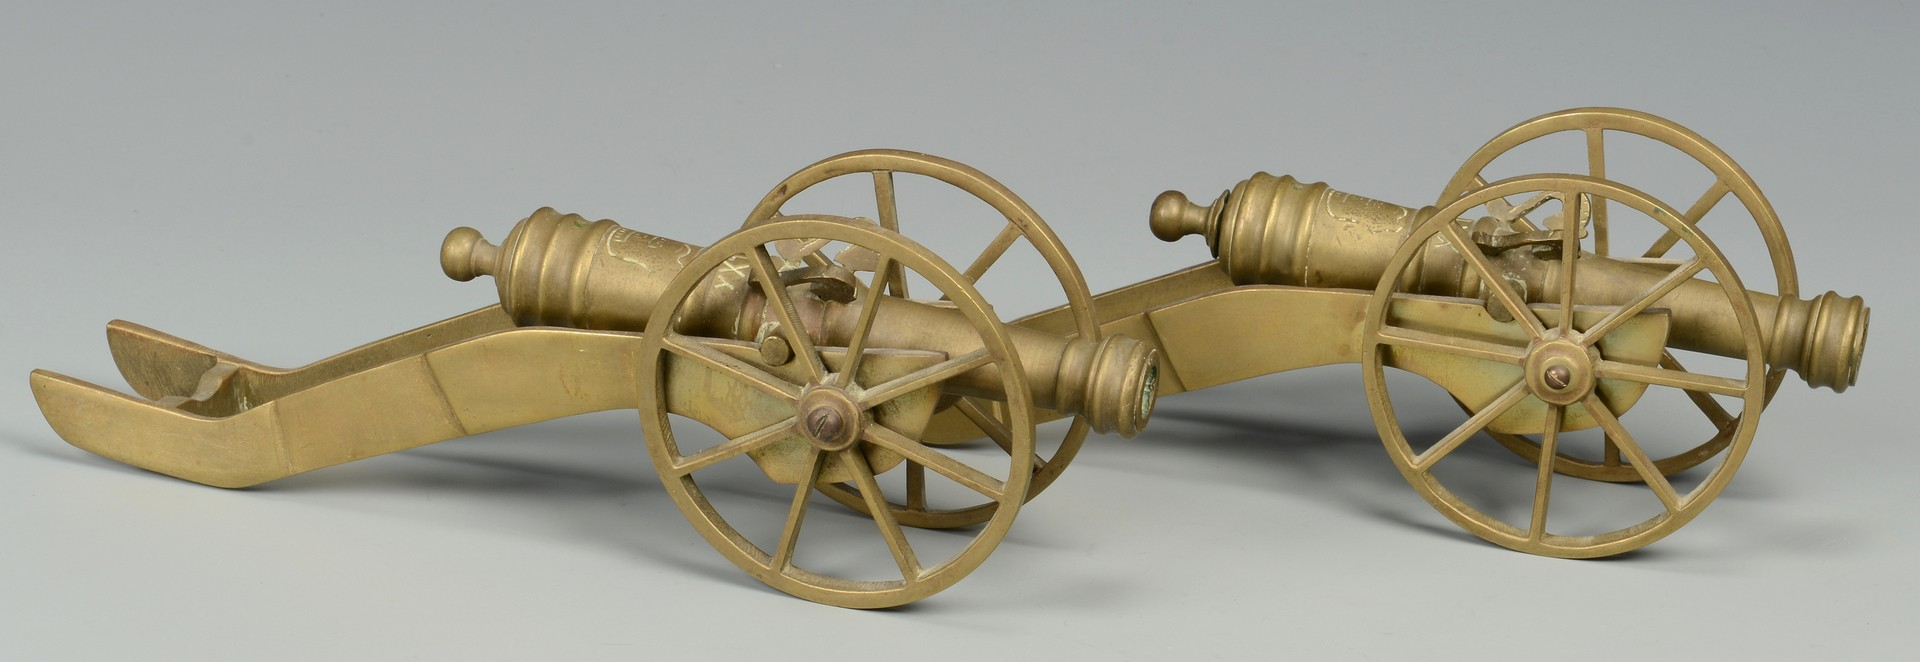 Lot 579: Group of 7 miniature cannons